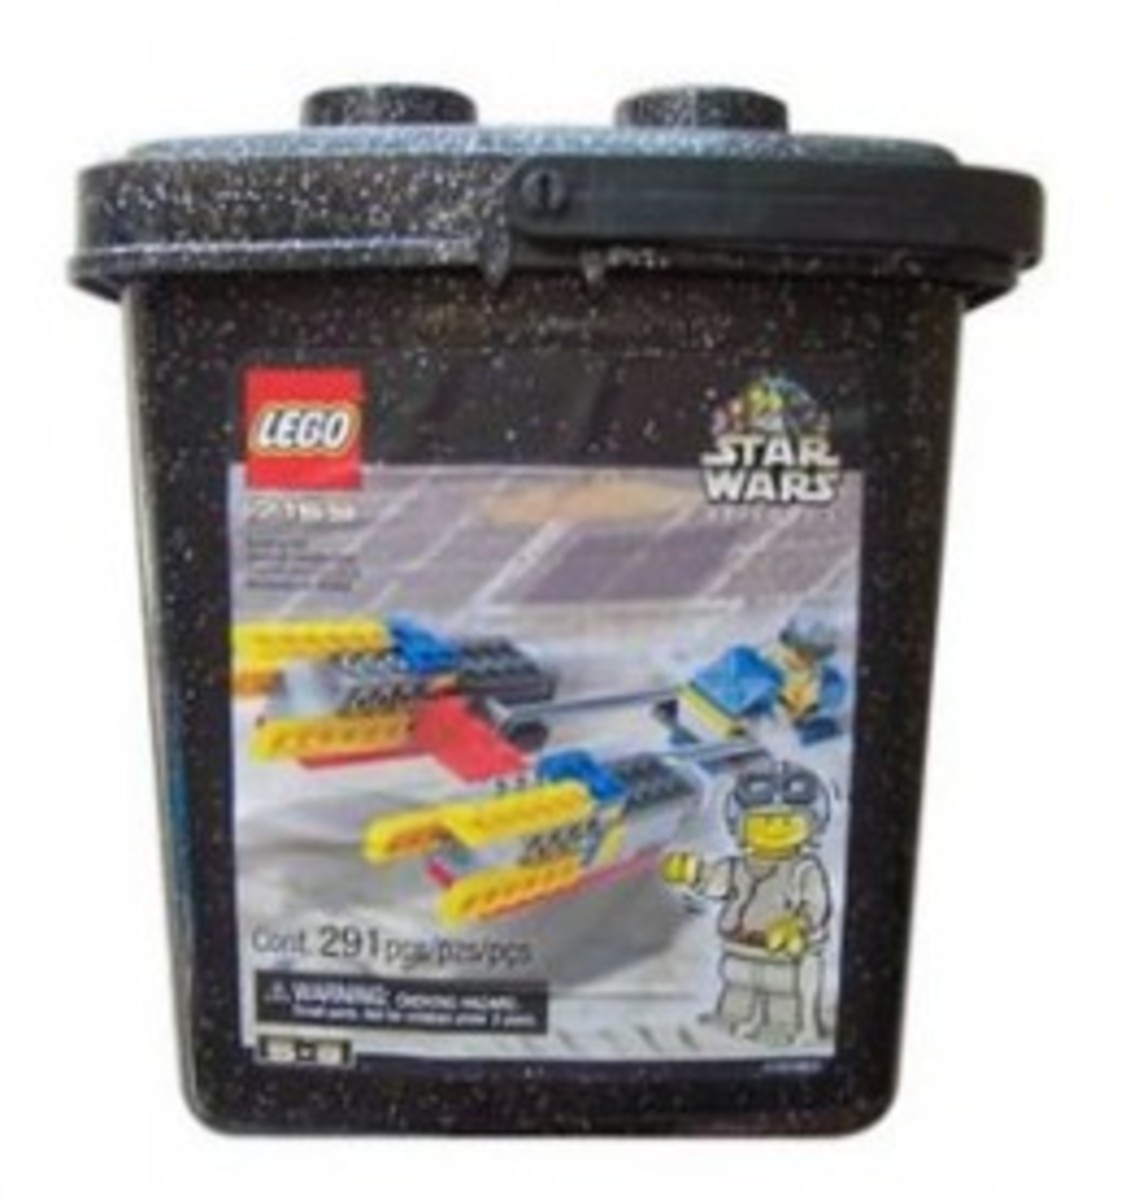 Lego Star Wars Podracer Bucket 7159